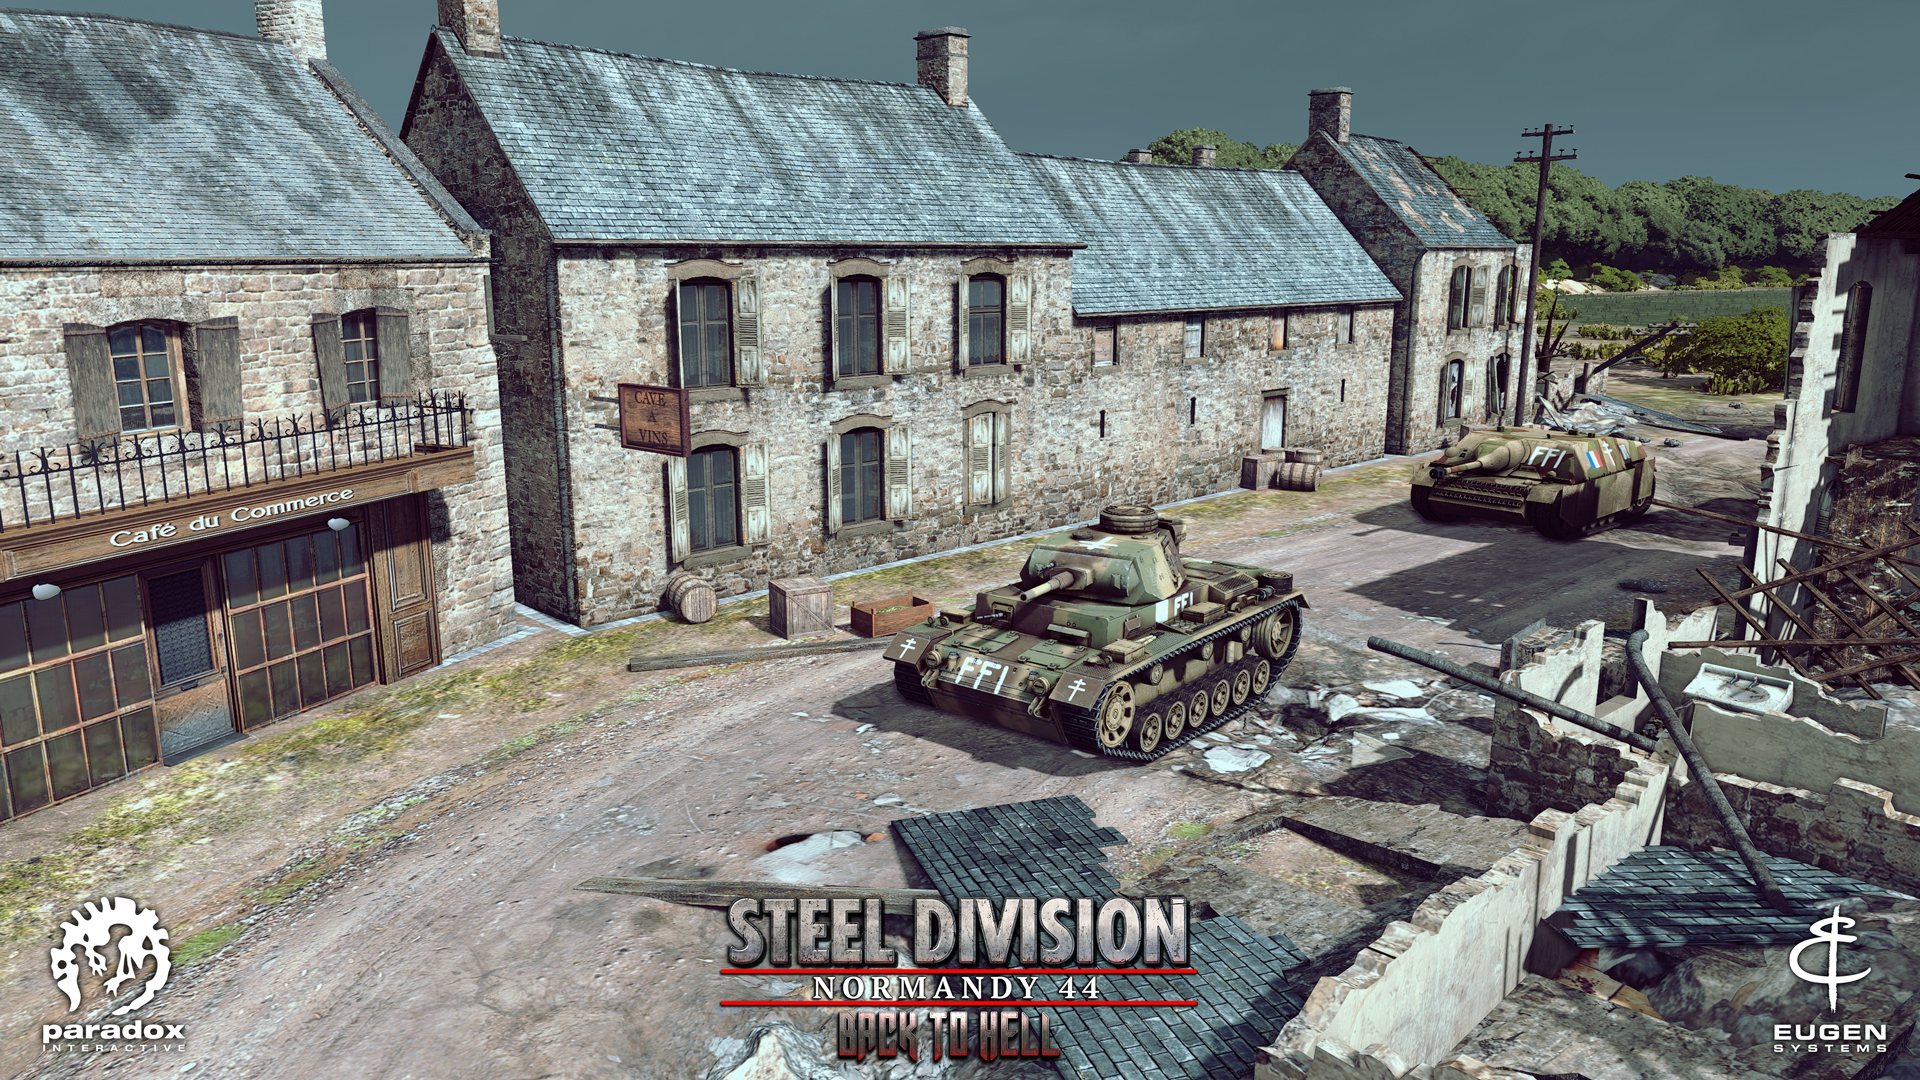 Steel_Division_Normandy_44_Back_Into_Hell_FFI_Panzer_01